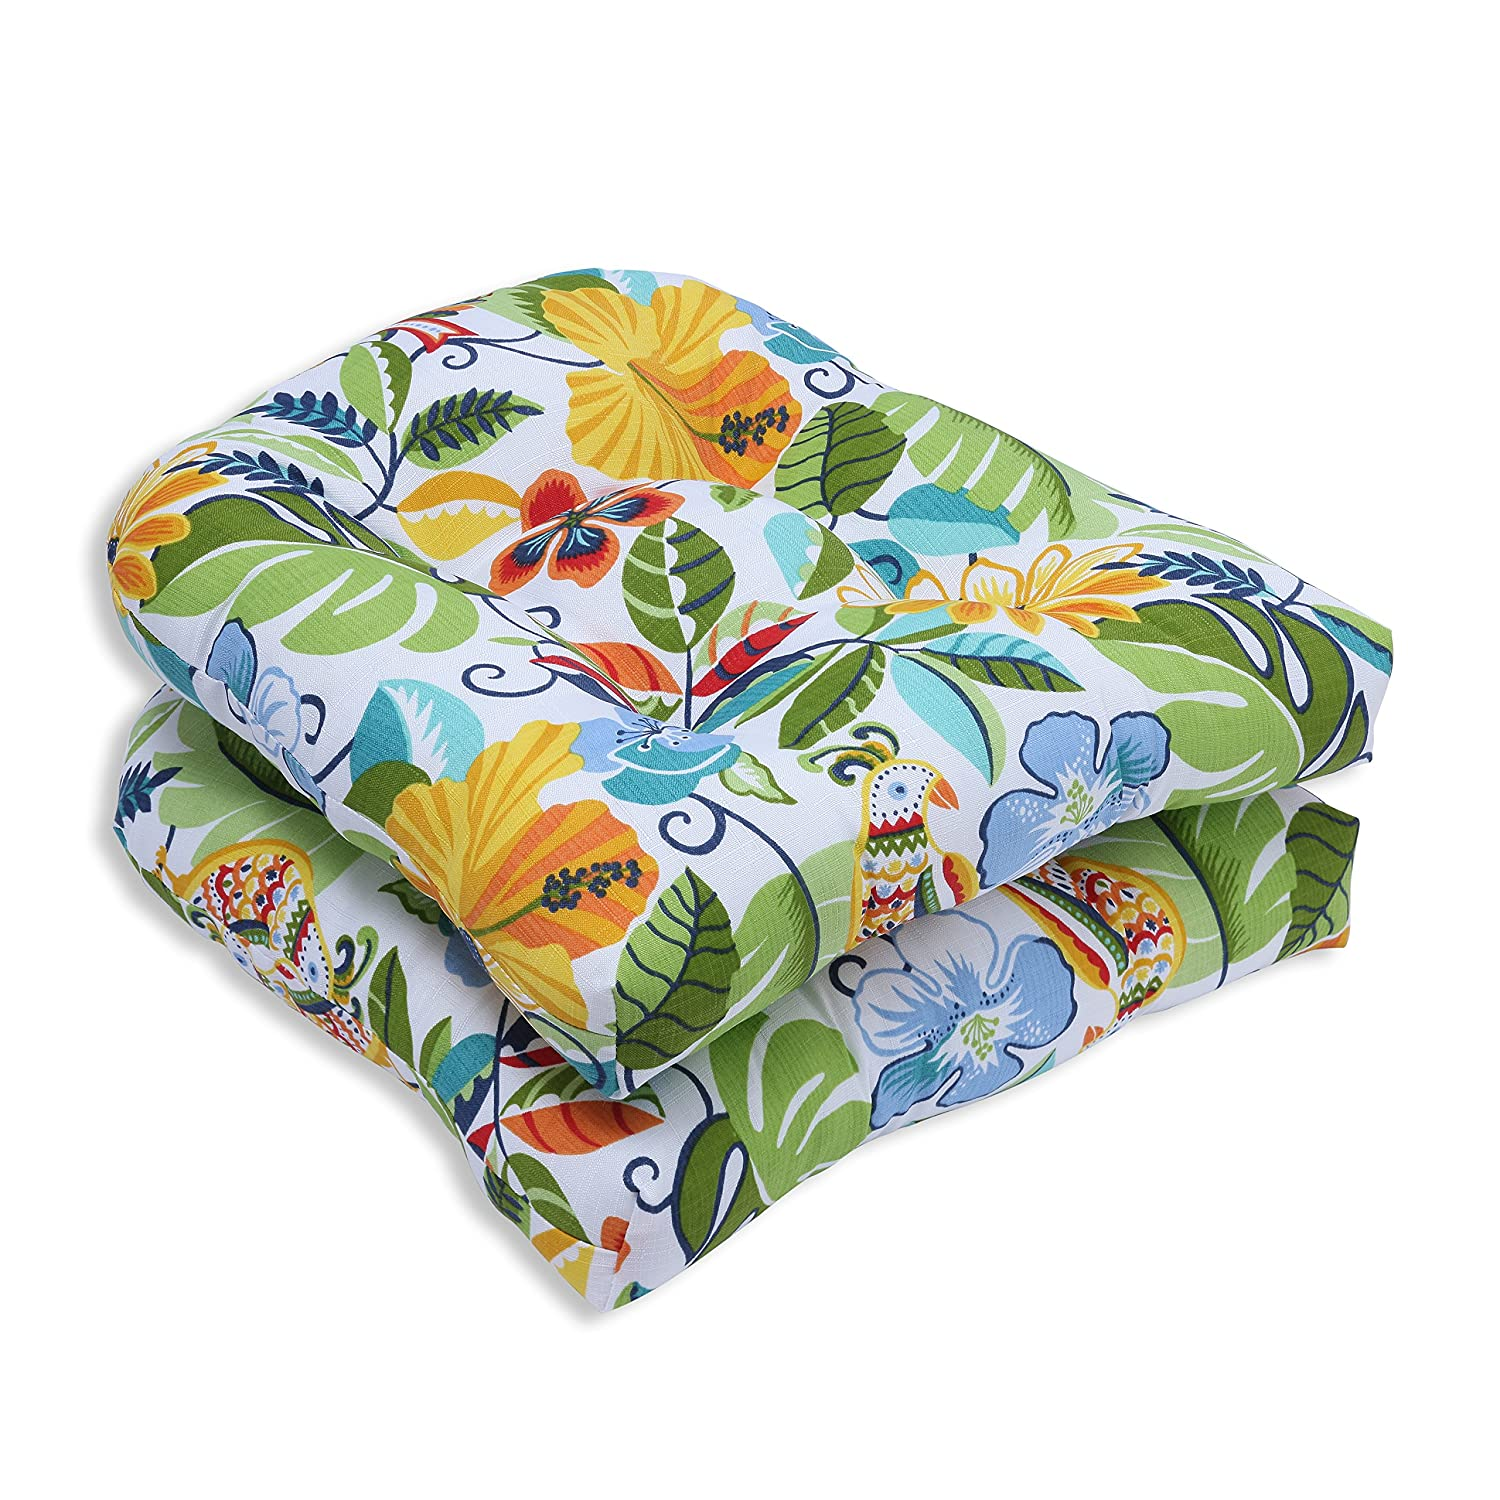 Pillow Perfect Outdoor Indoor Lensing Jungle Wicker Seat Cushion, Set of 2